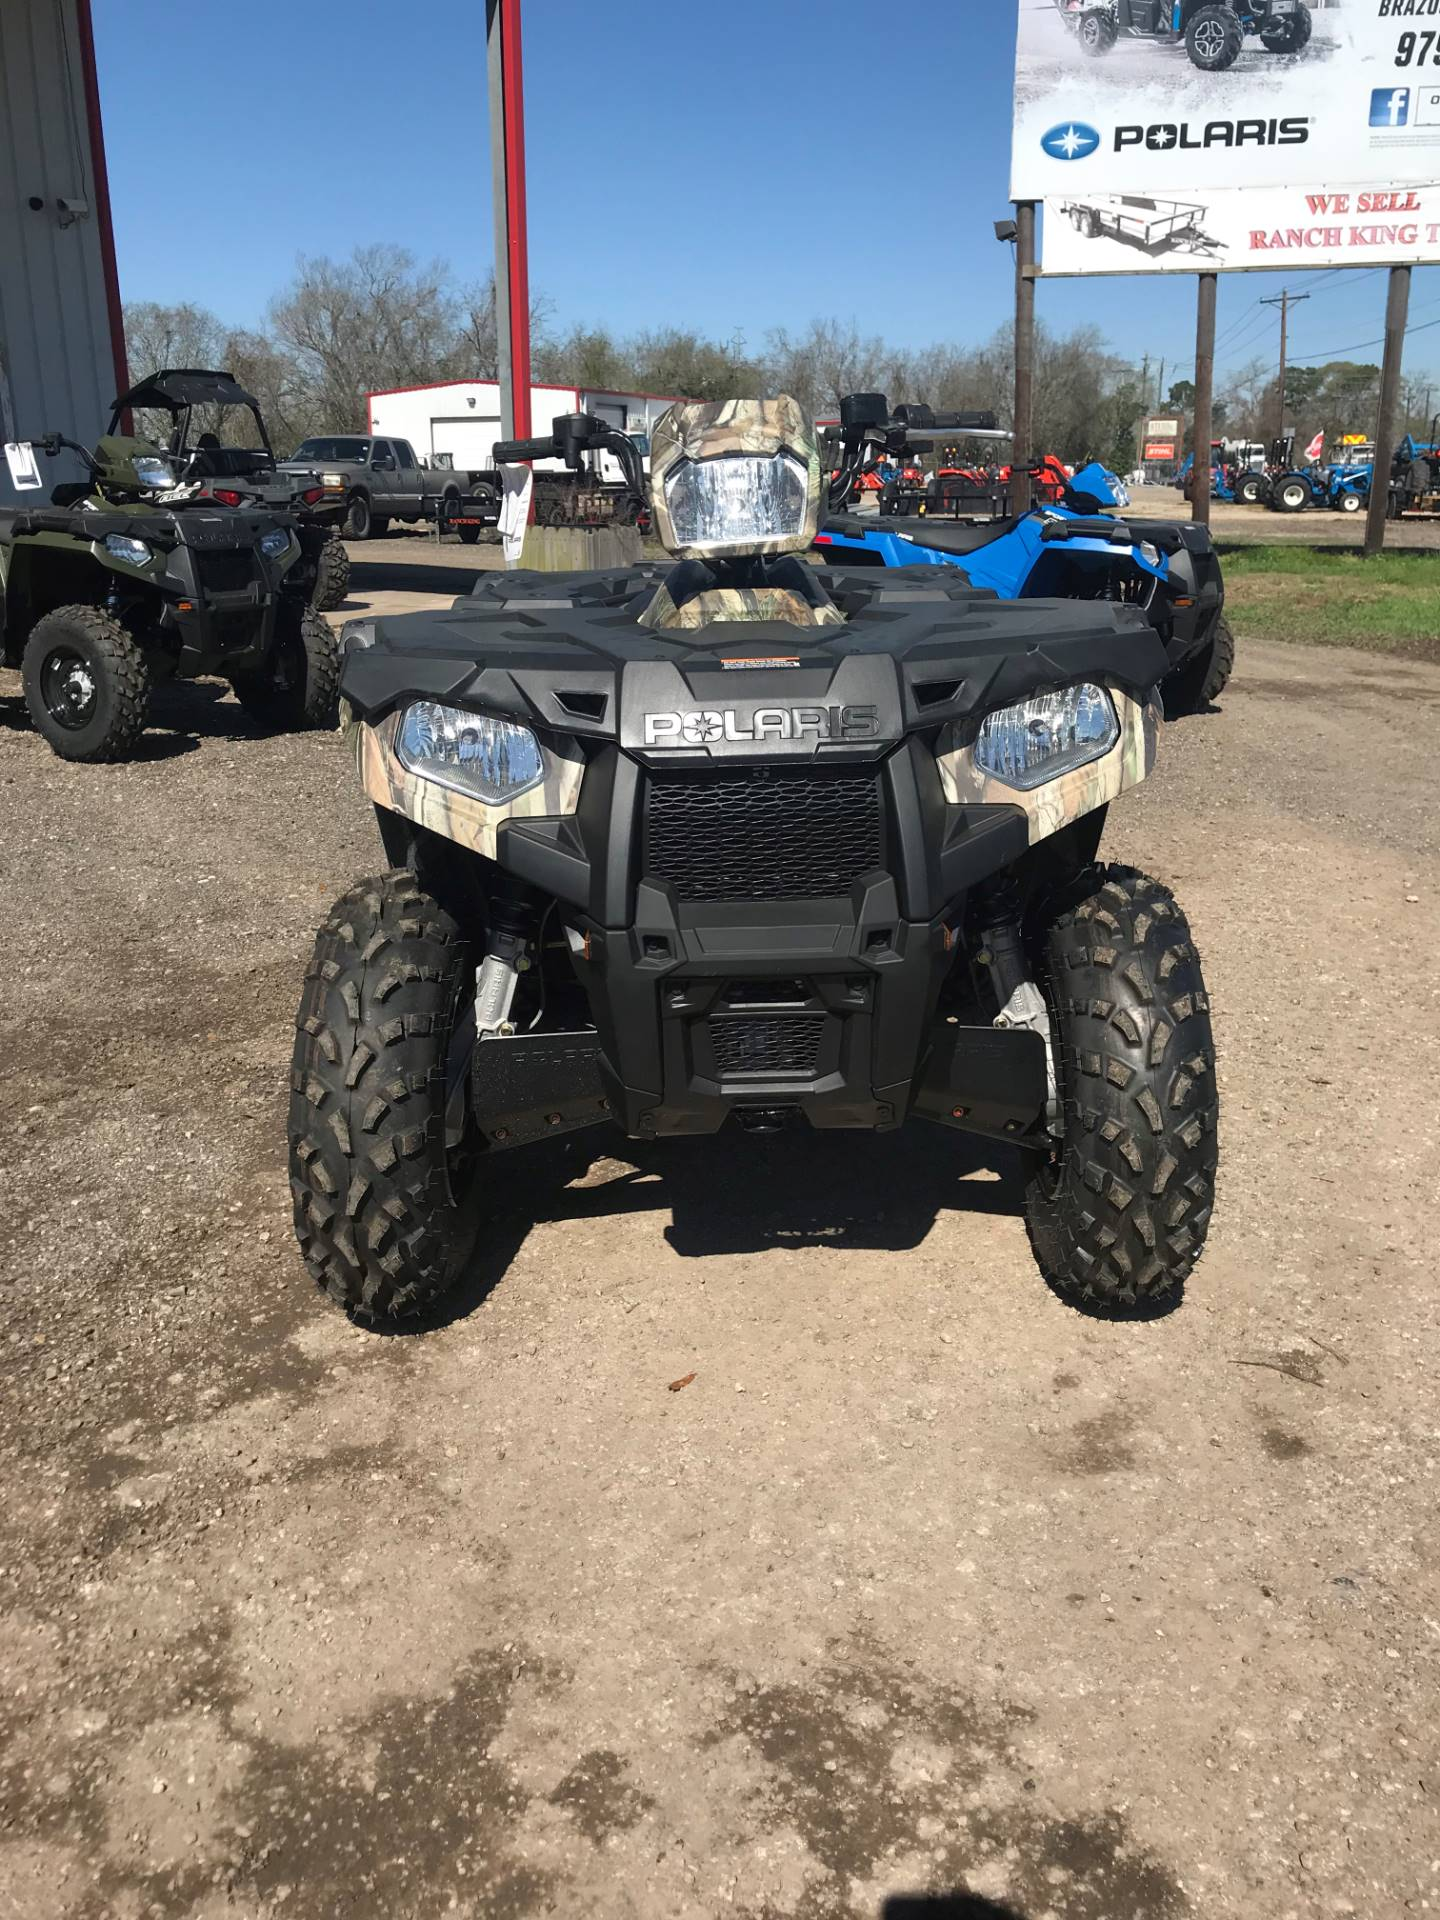 2019 Polaris Sportsman 570 Camo in Brazoria, Texas